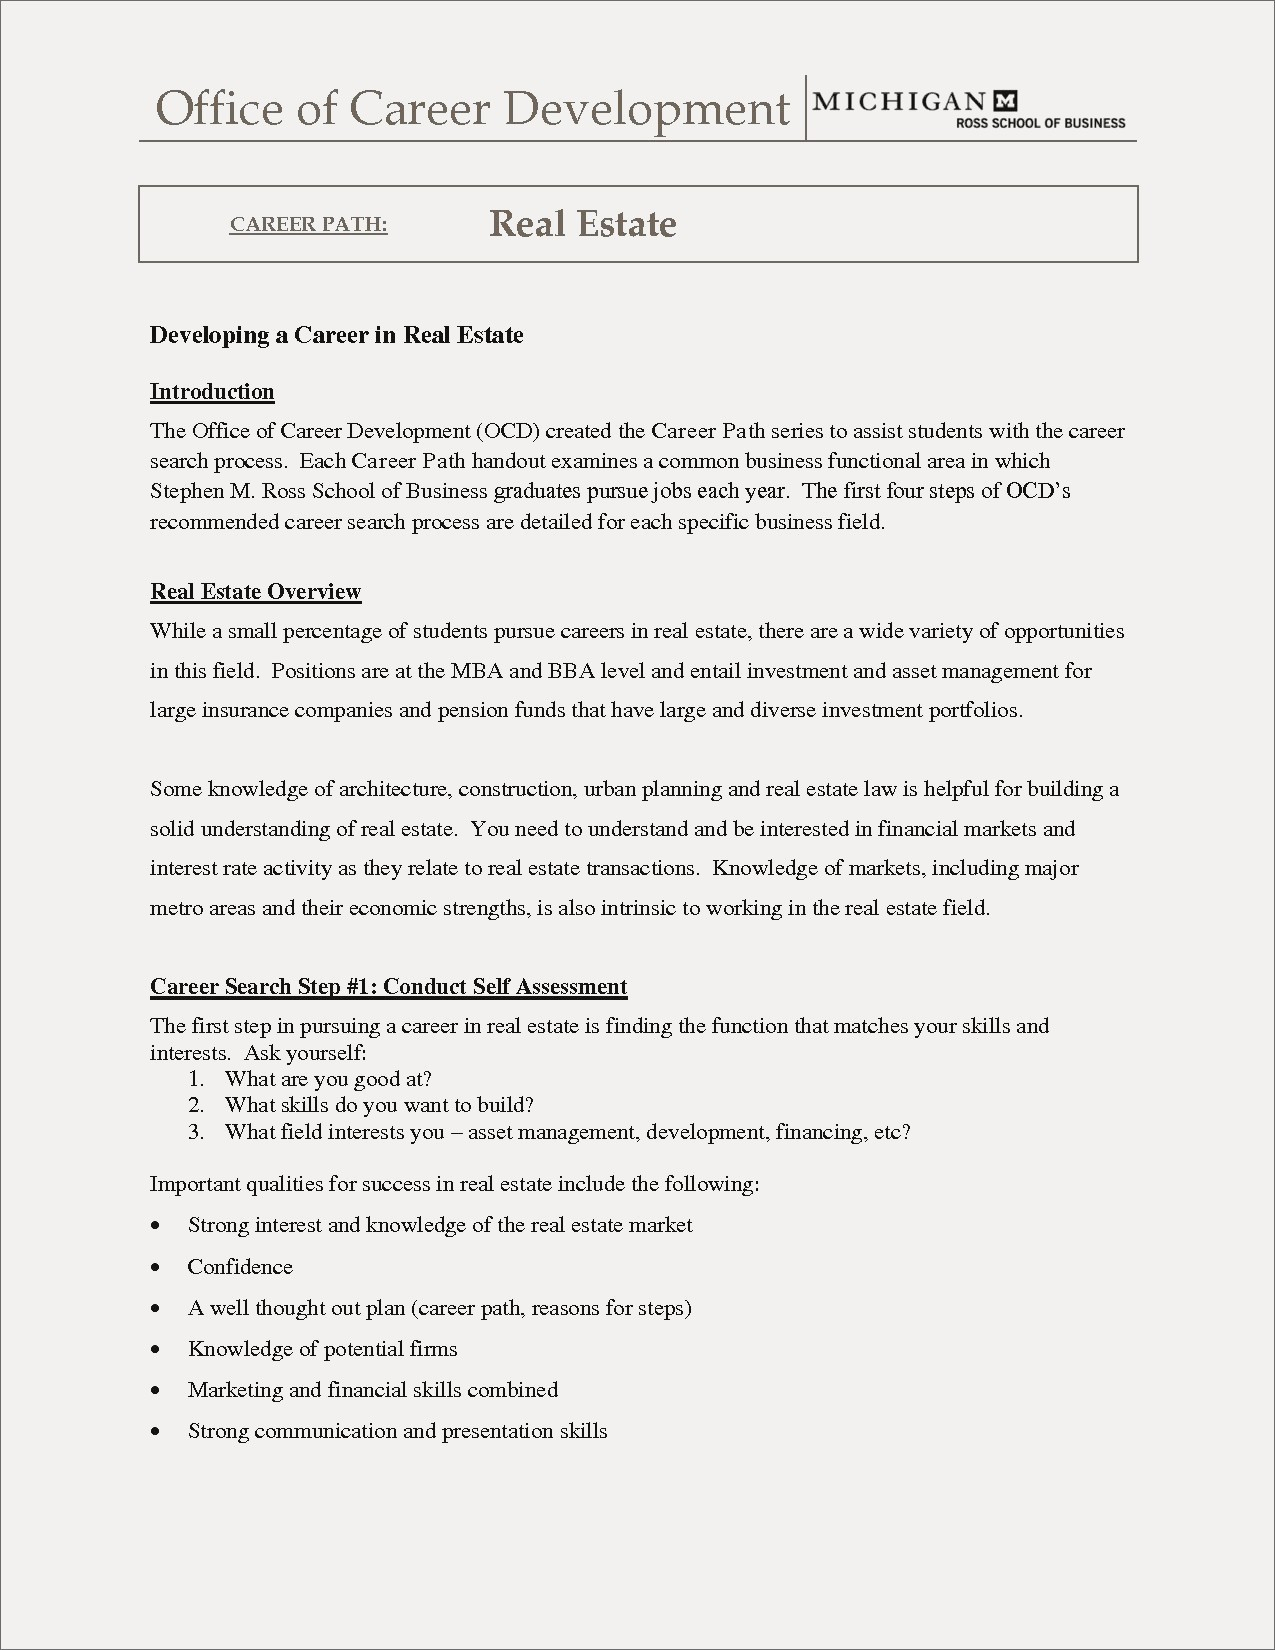 ross school of business resume template Collection-Real Estate Assistant Resume New Ross School Business Resume Template Save Real Estate Agent Real 14-m